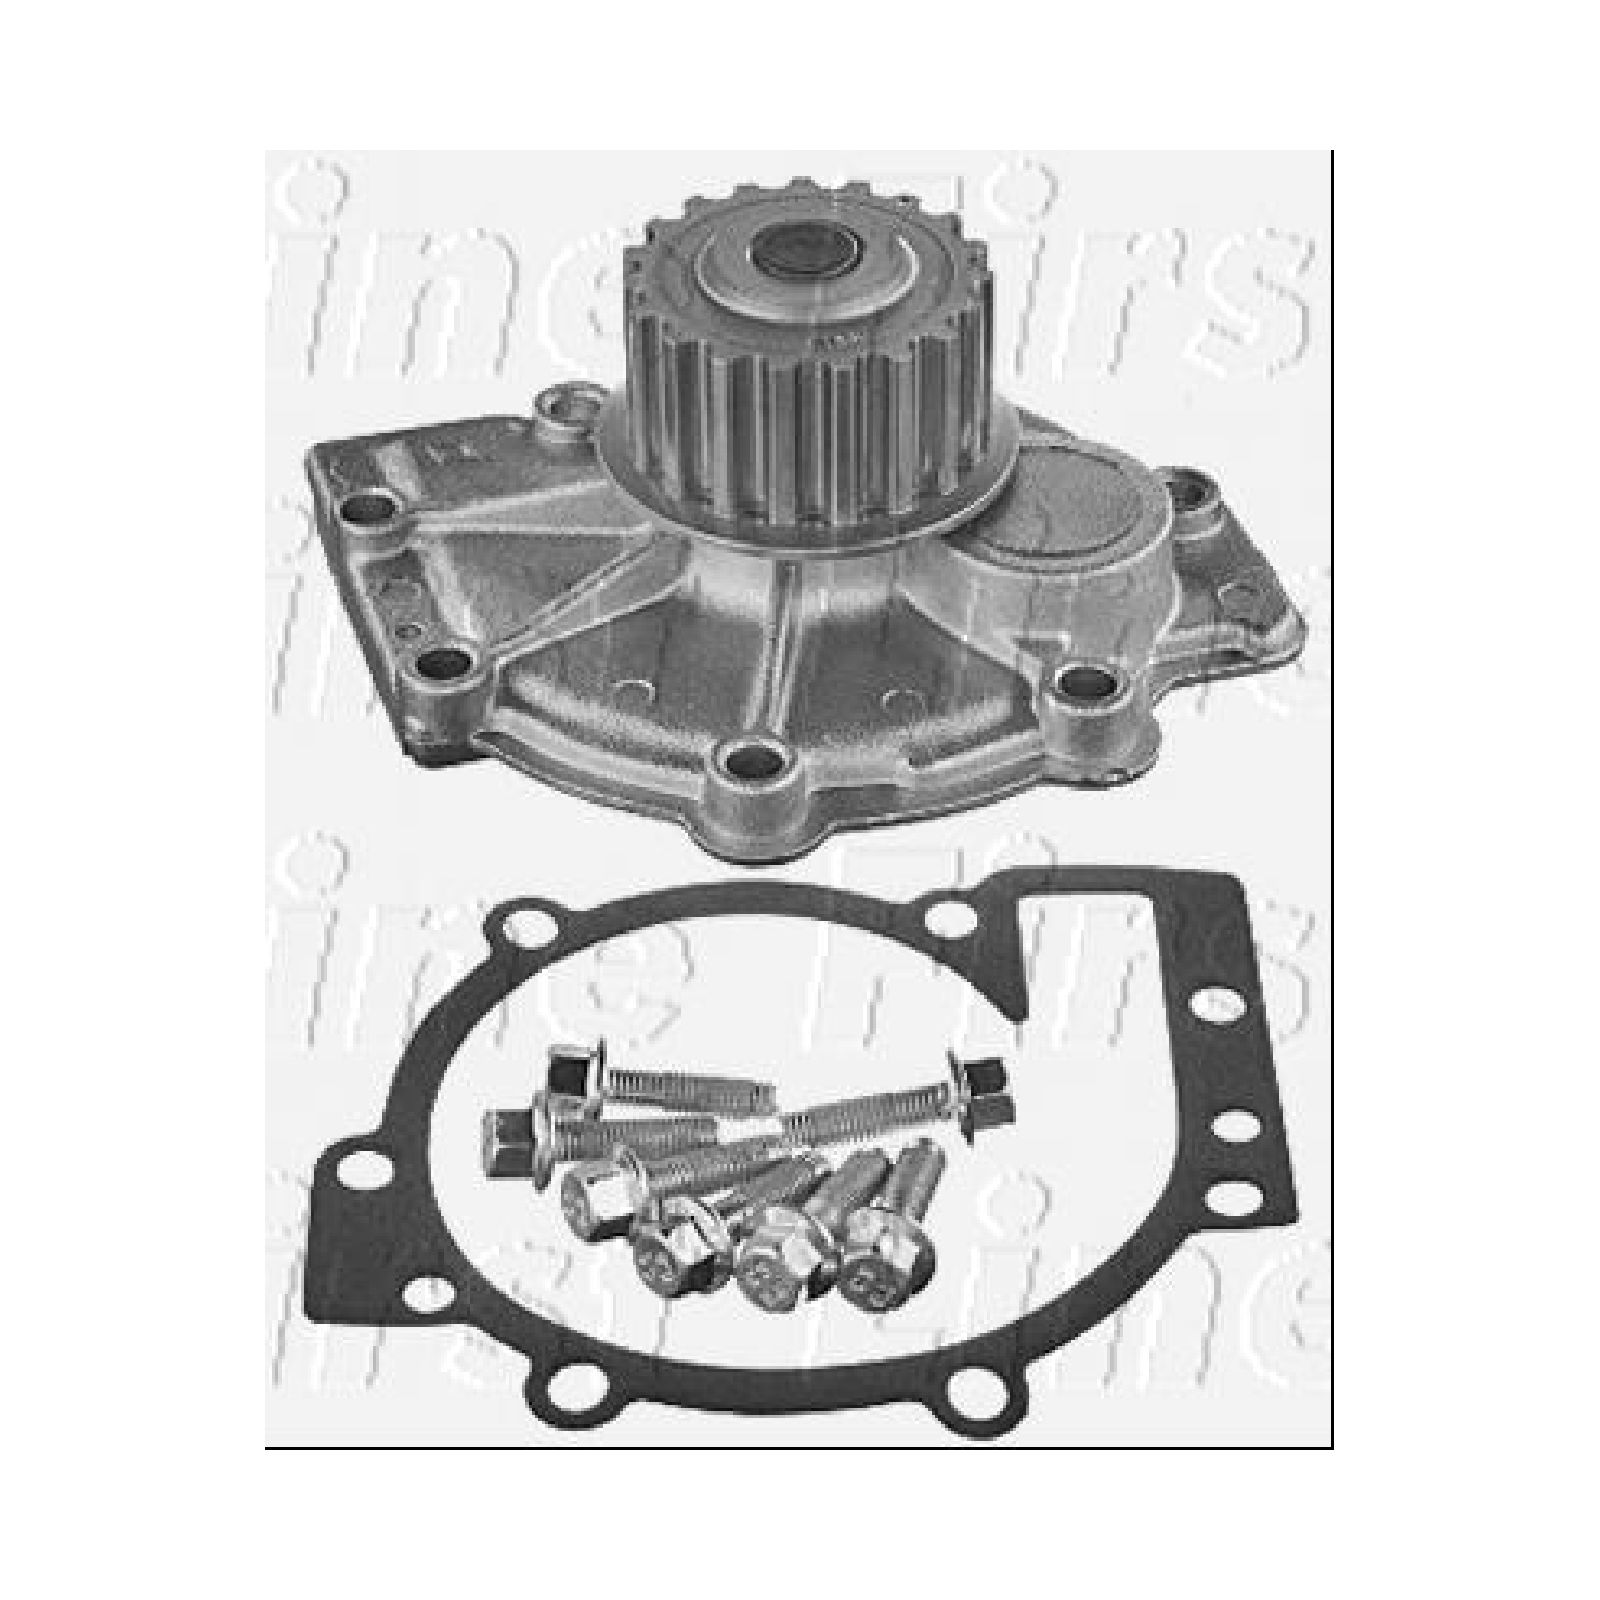 Vehicle Parts & Accessories > Car Parts > Engine Cooling > Water  #434343